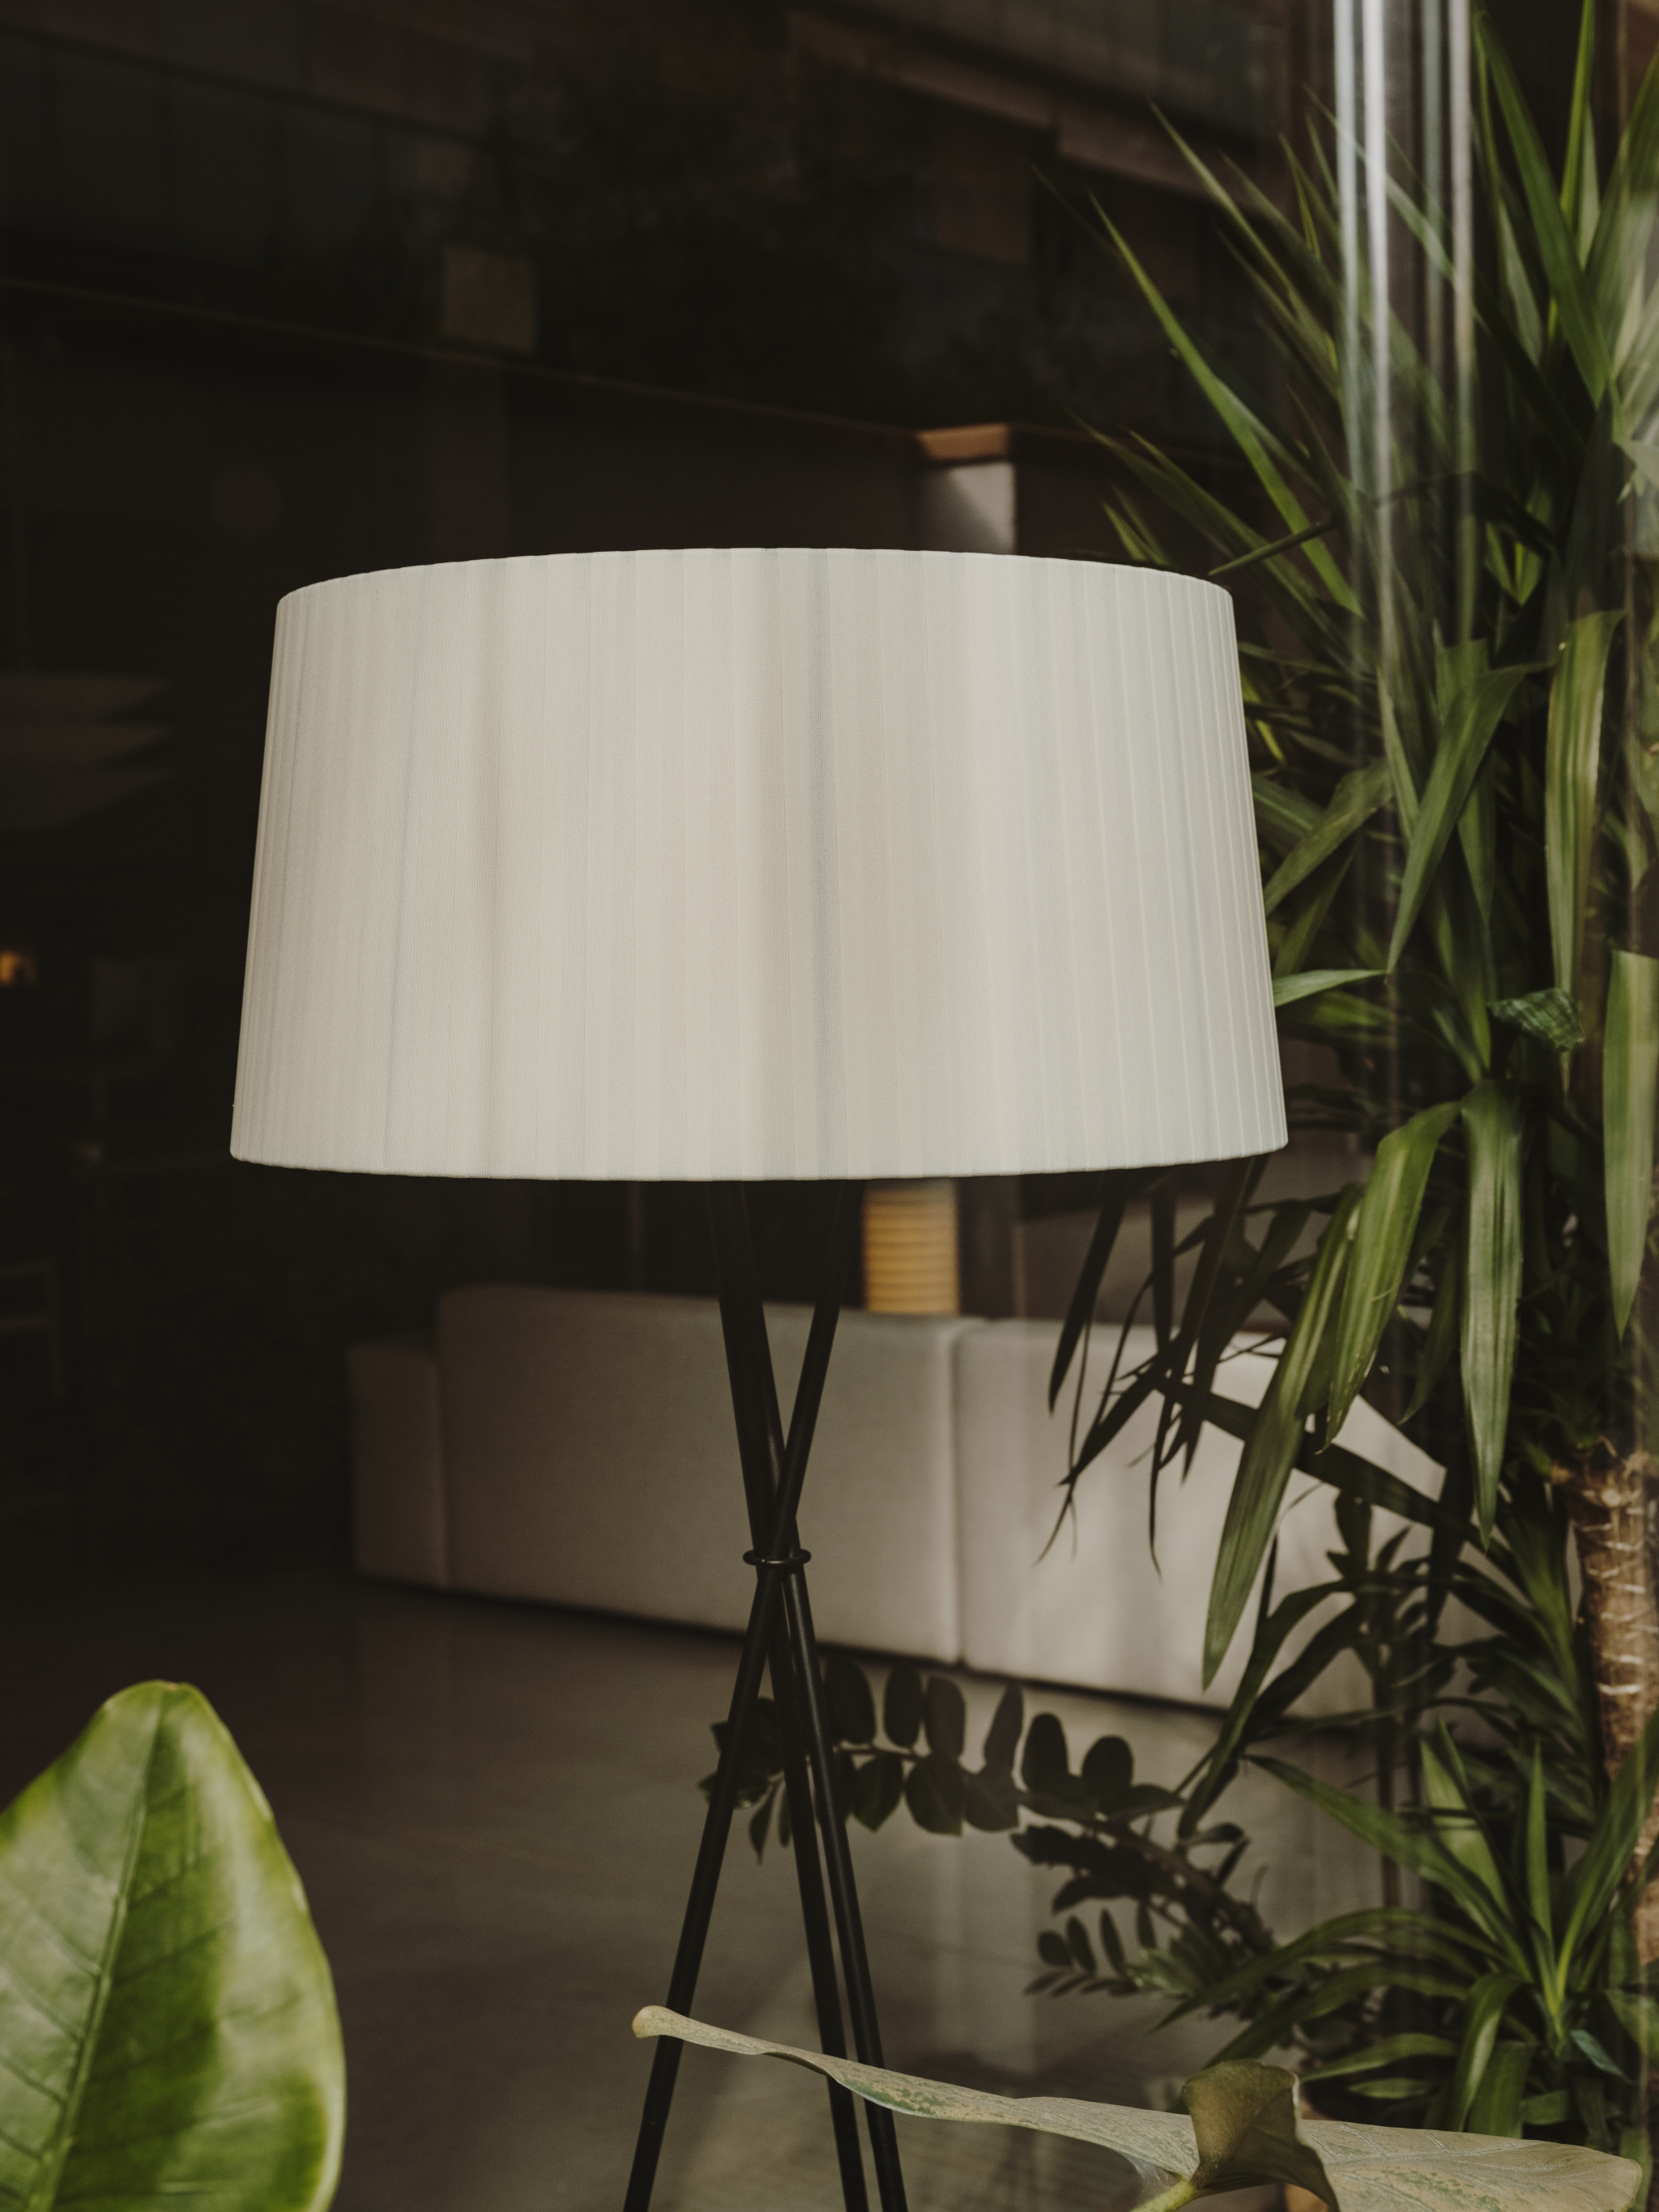 Best Best Floor Lamps Vs Table Lamps 2020 that you must See @house2homegoods.net